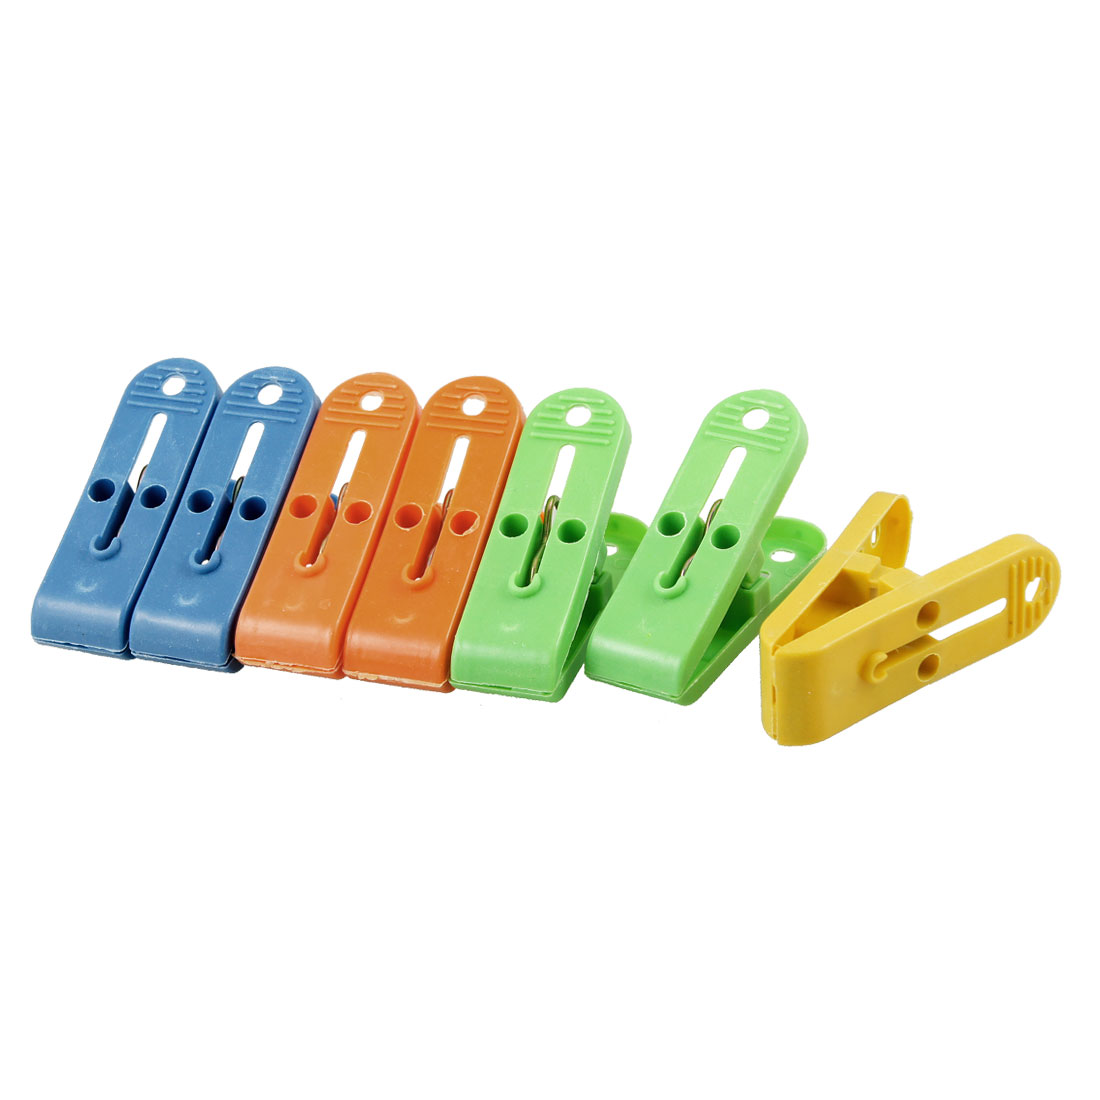 Back to School / College Gifts and Accessories | 7 Pcs Home House Multicolored Plastic Clothes Clips Hanging Pins Pegs